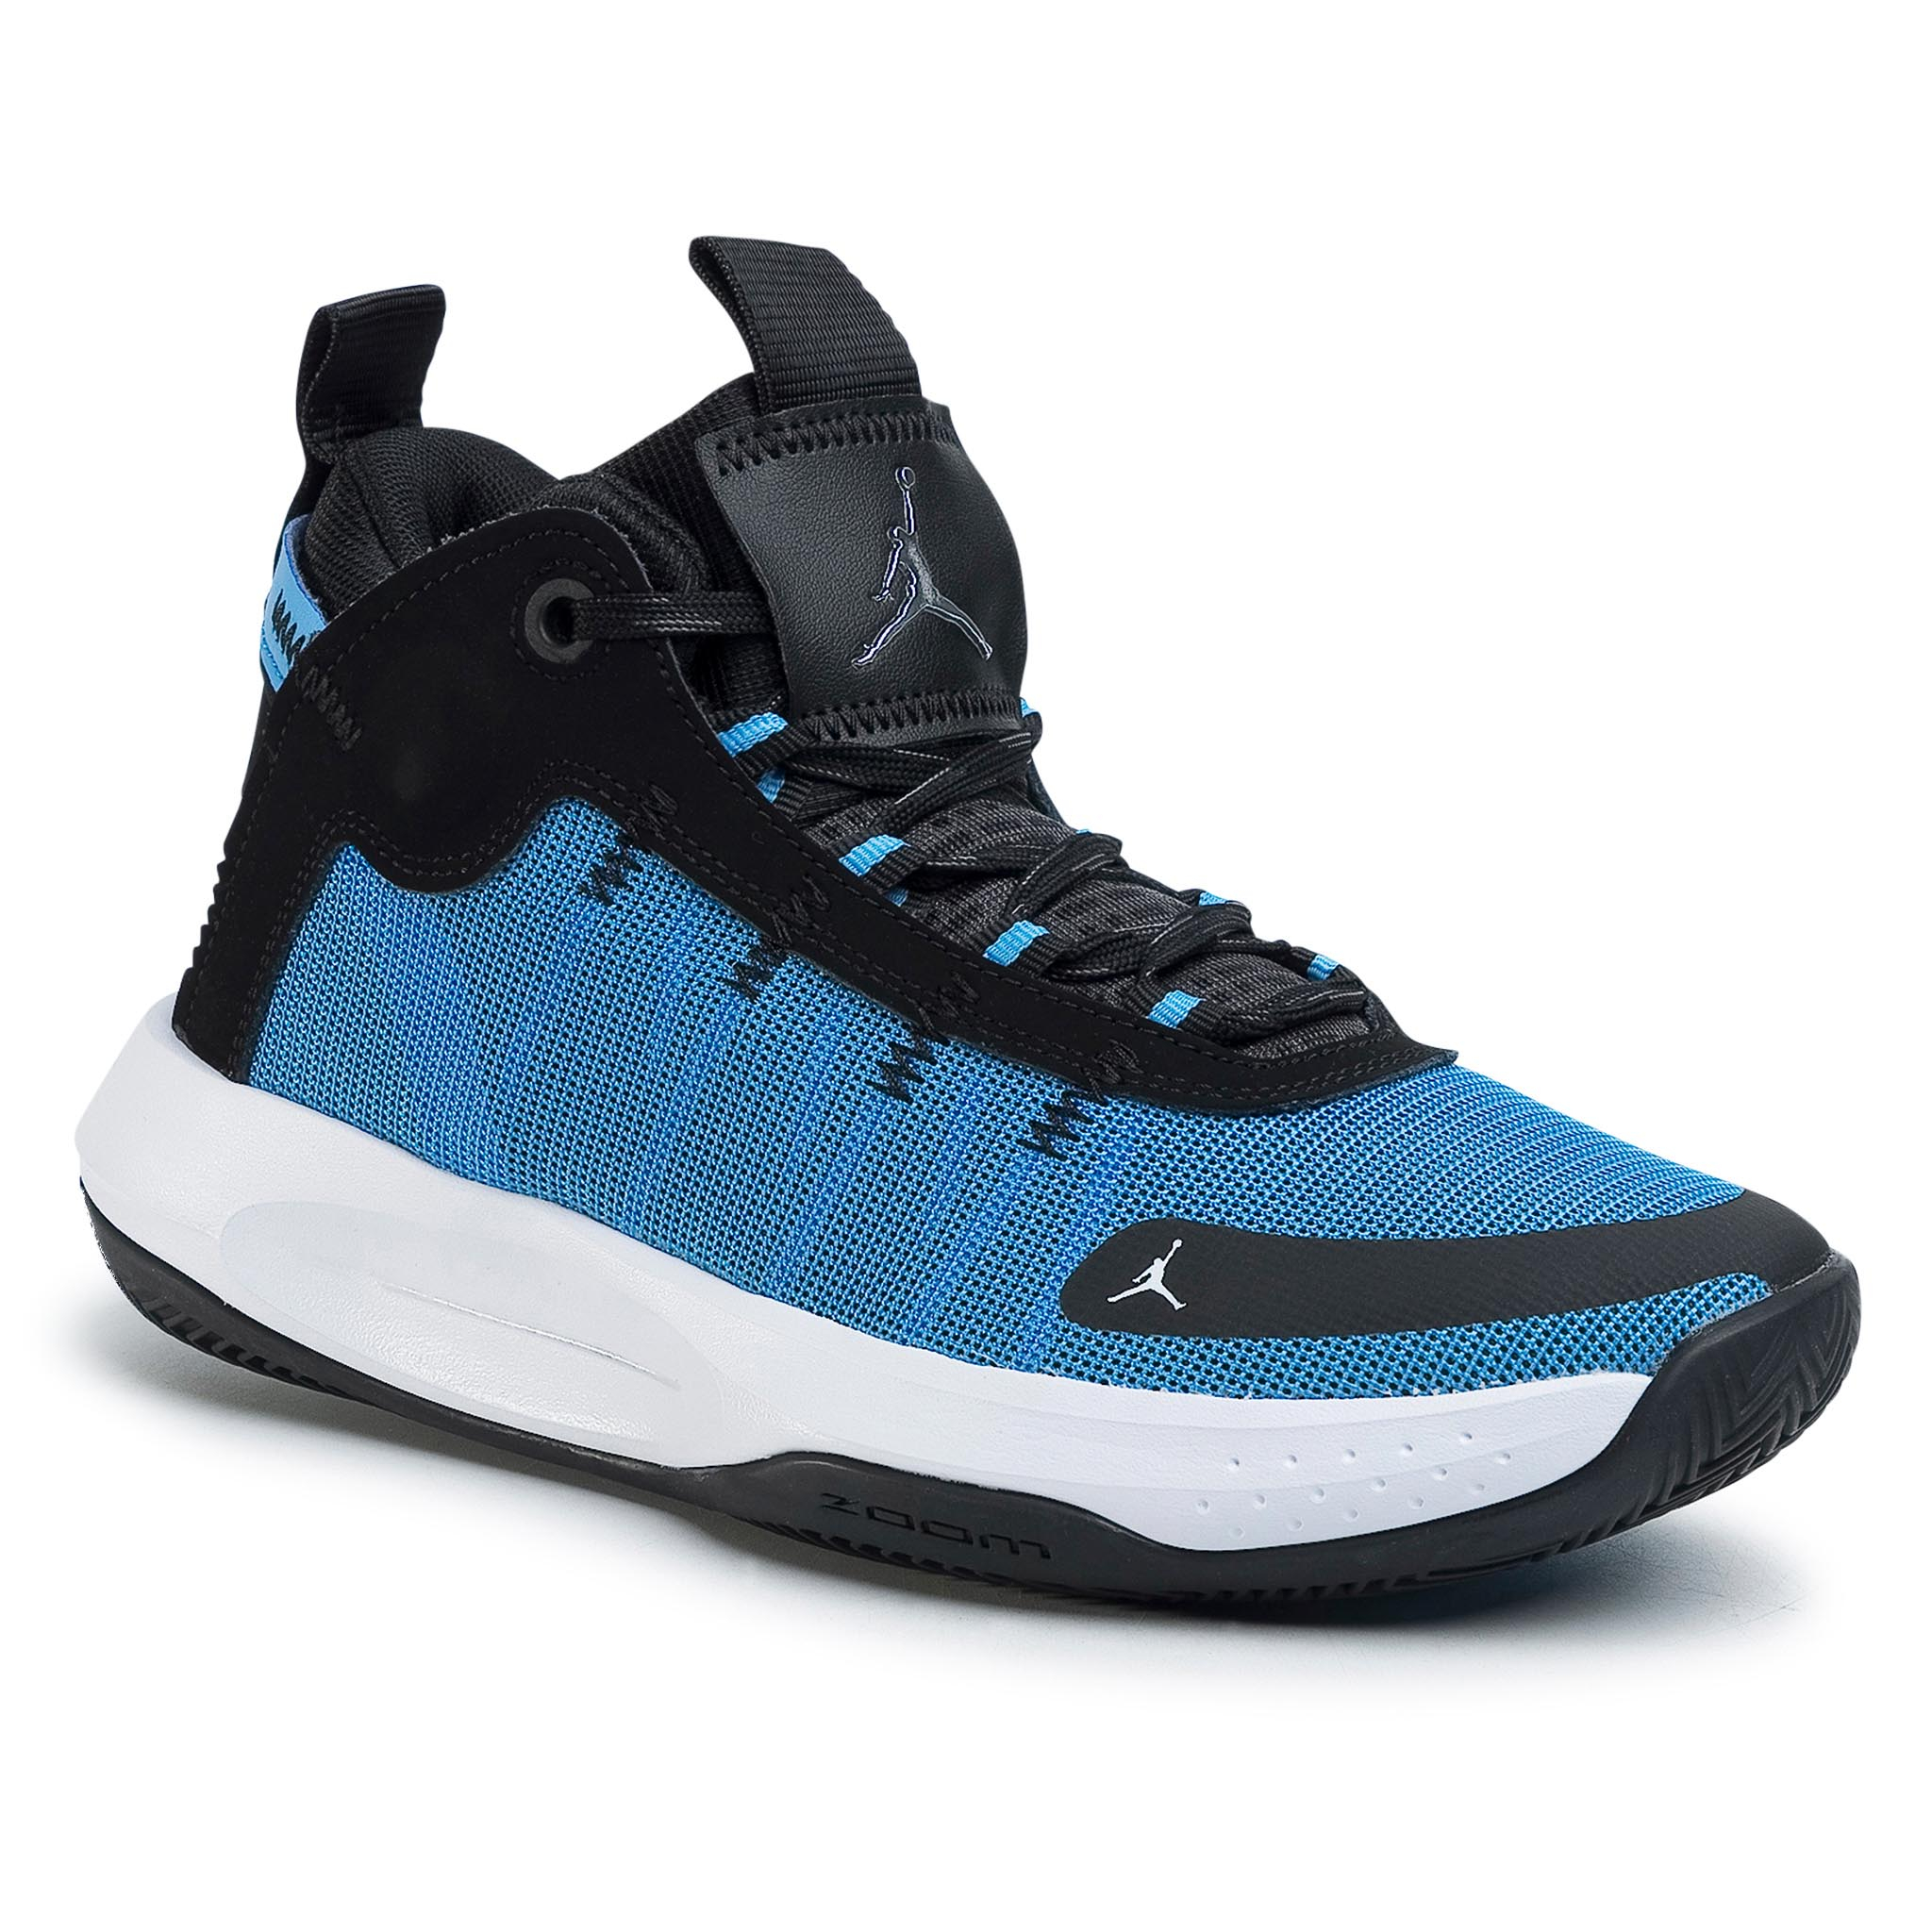 Pantofi Nike - Jordan Jumpman 2020 Bq3449 400 University Blue imagine